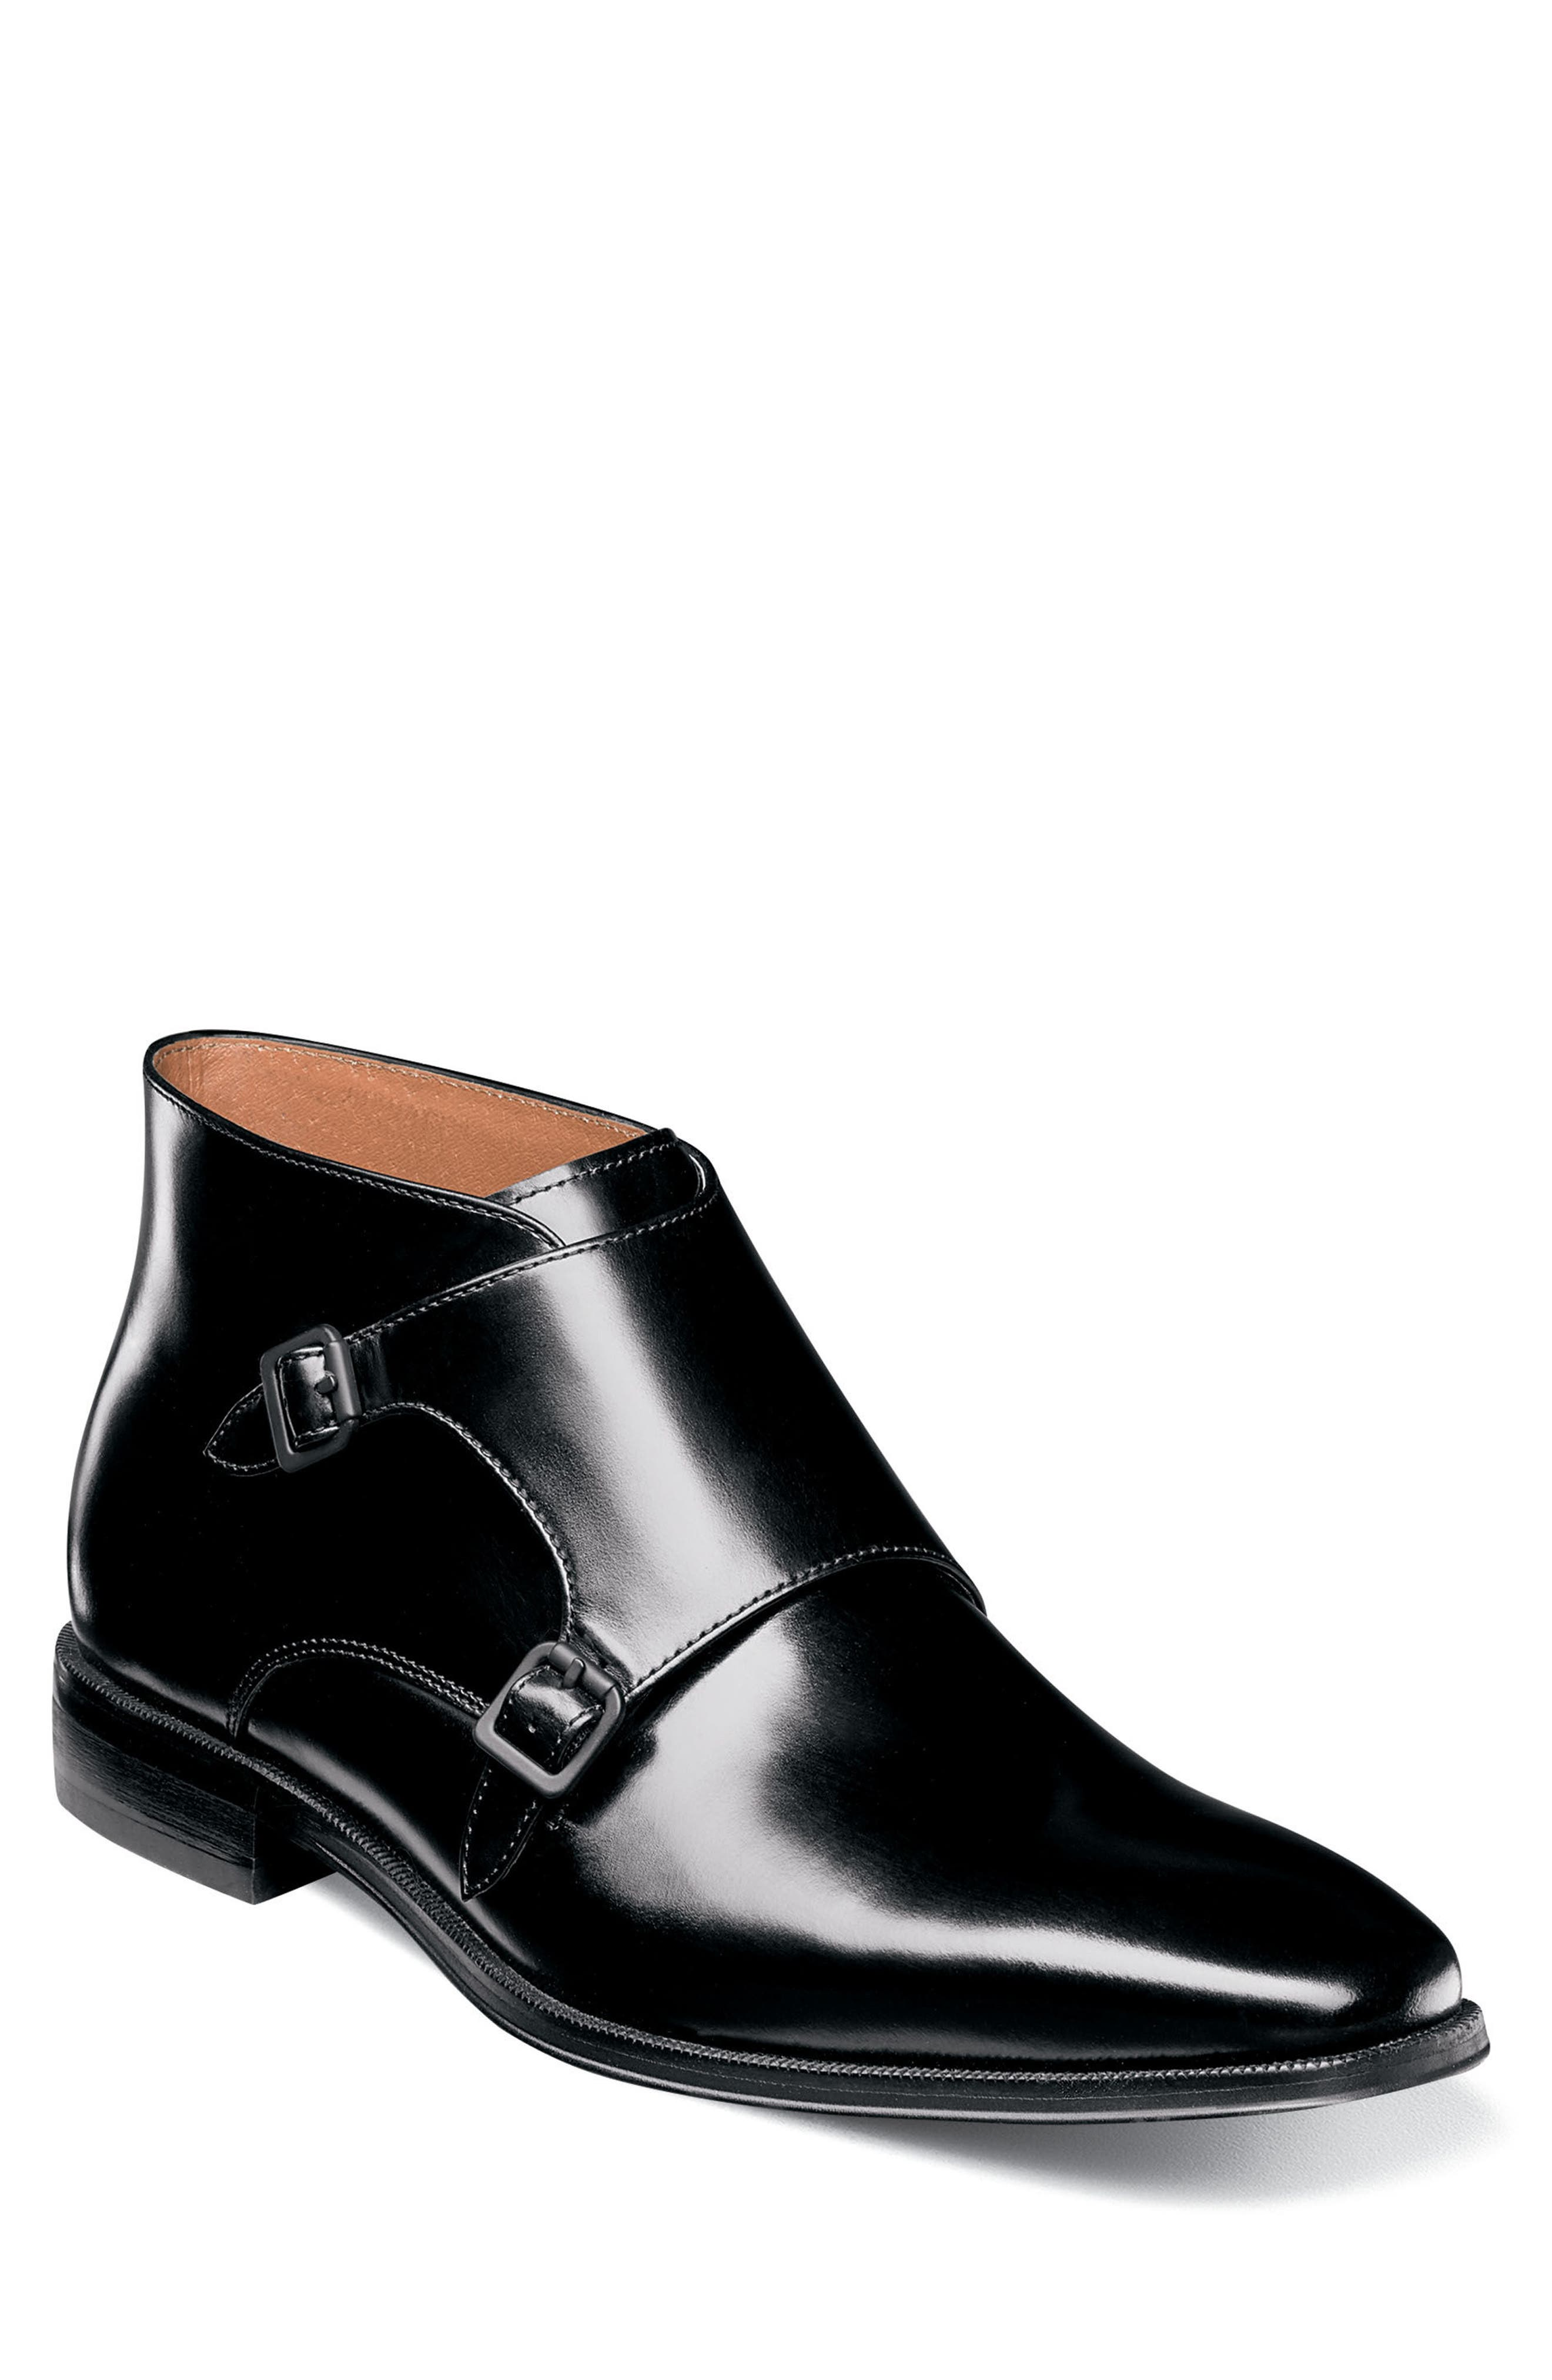 Belfast Double Monk Strap Boot,                         Main,                         color,